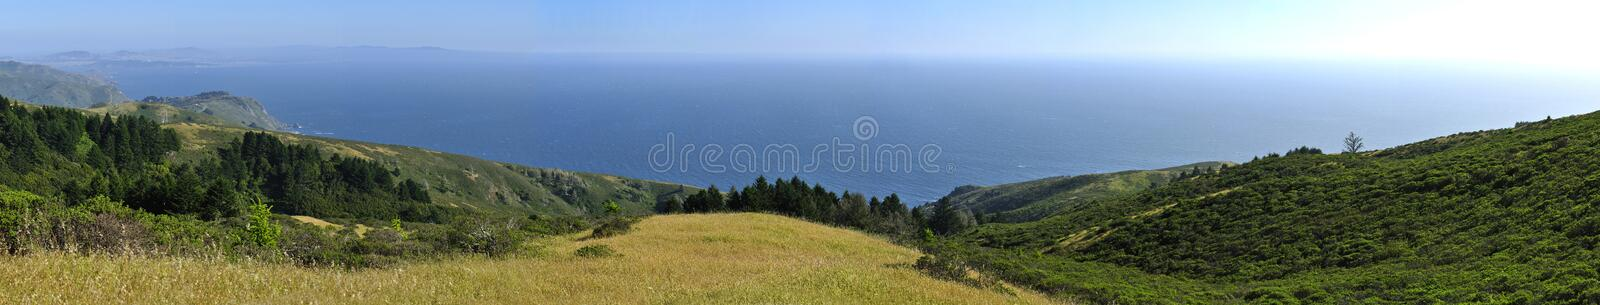 Muir woods. Panoramic view of Pacific Ocean from Muir Woods in California royalty free stock photography